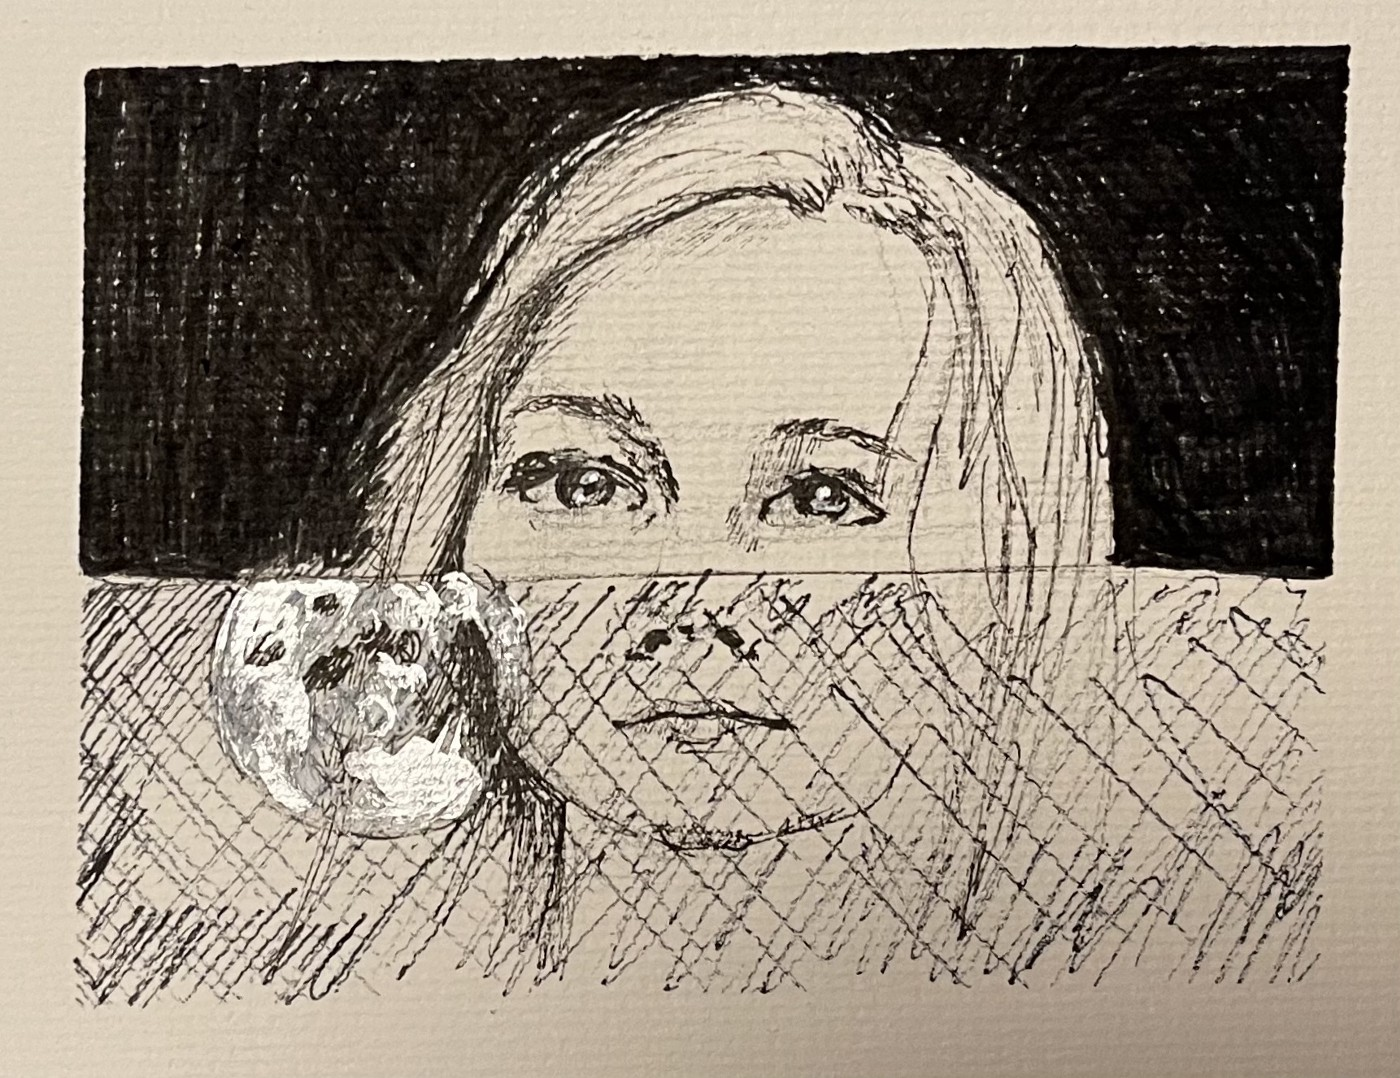 A child of an alcoholic watches the moon through a car window, ink drawing by the author.